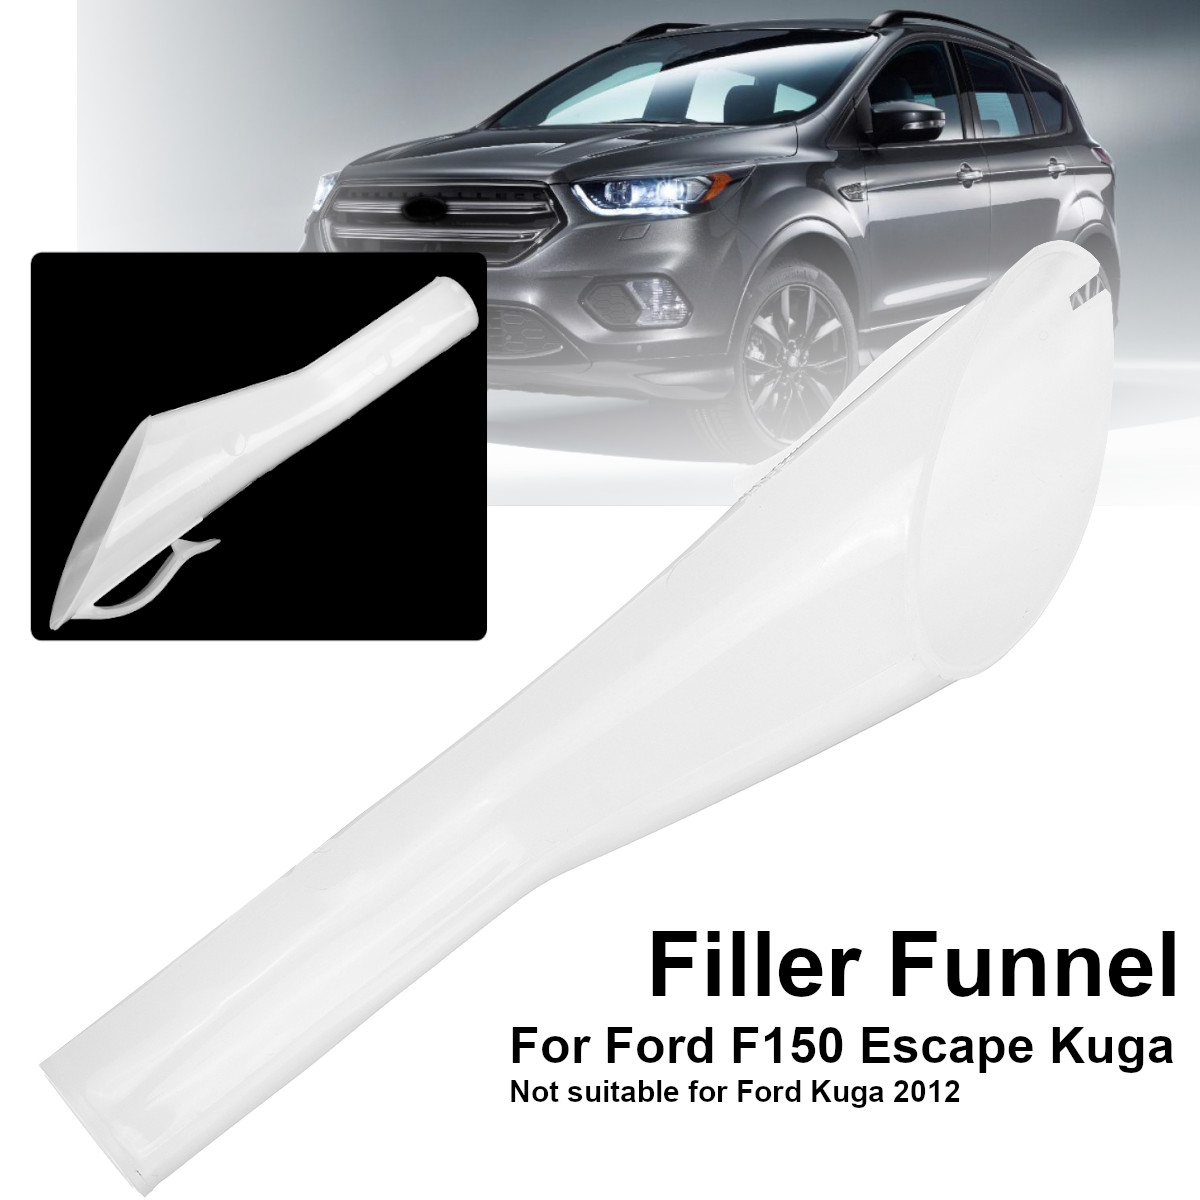 Car Petrol Oil Filler Funnel Fuel Refueling Tool Car Fuel Filters For Ford Escape /Kuga Pick Up F150 /Mondeo 2008